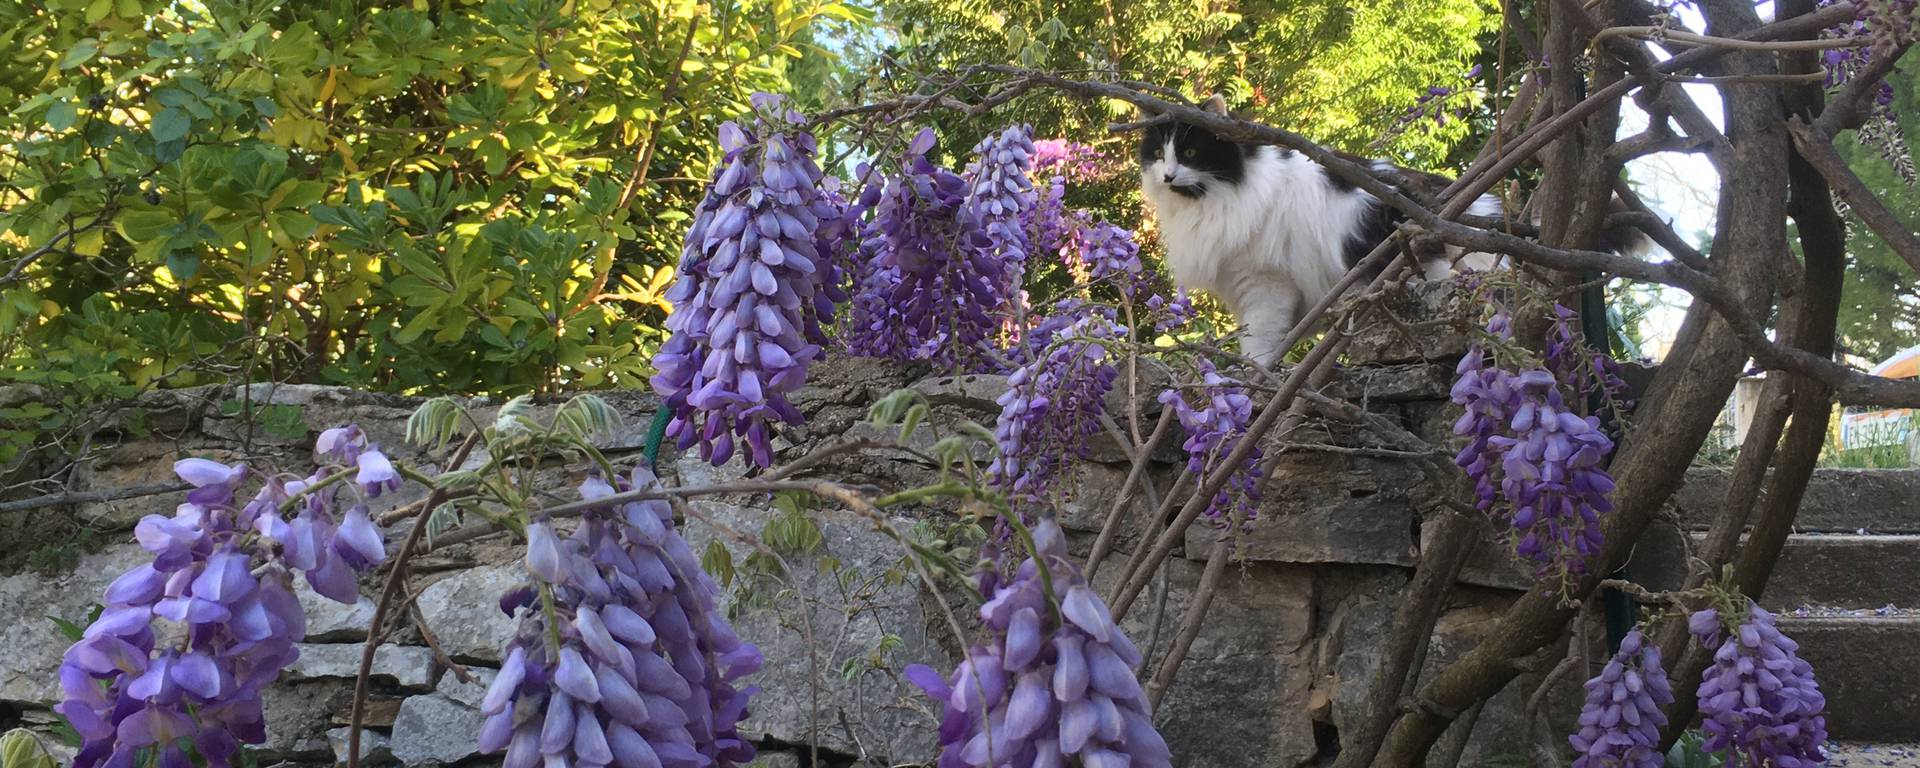 lolcats chats luberon animaux nature